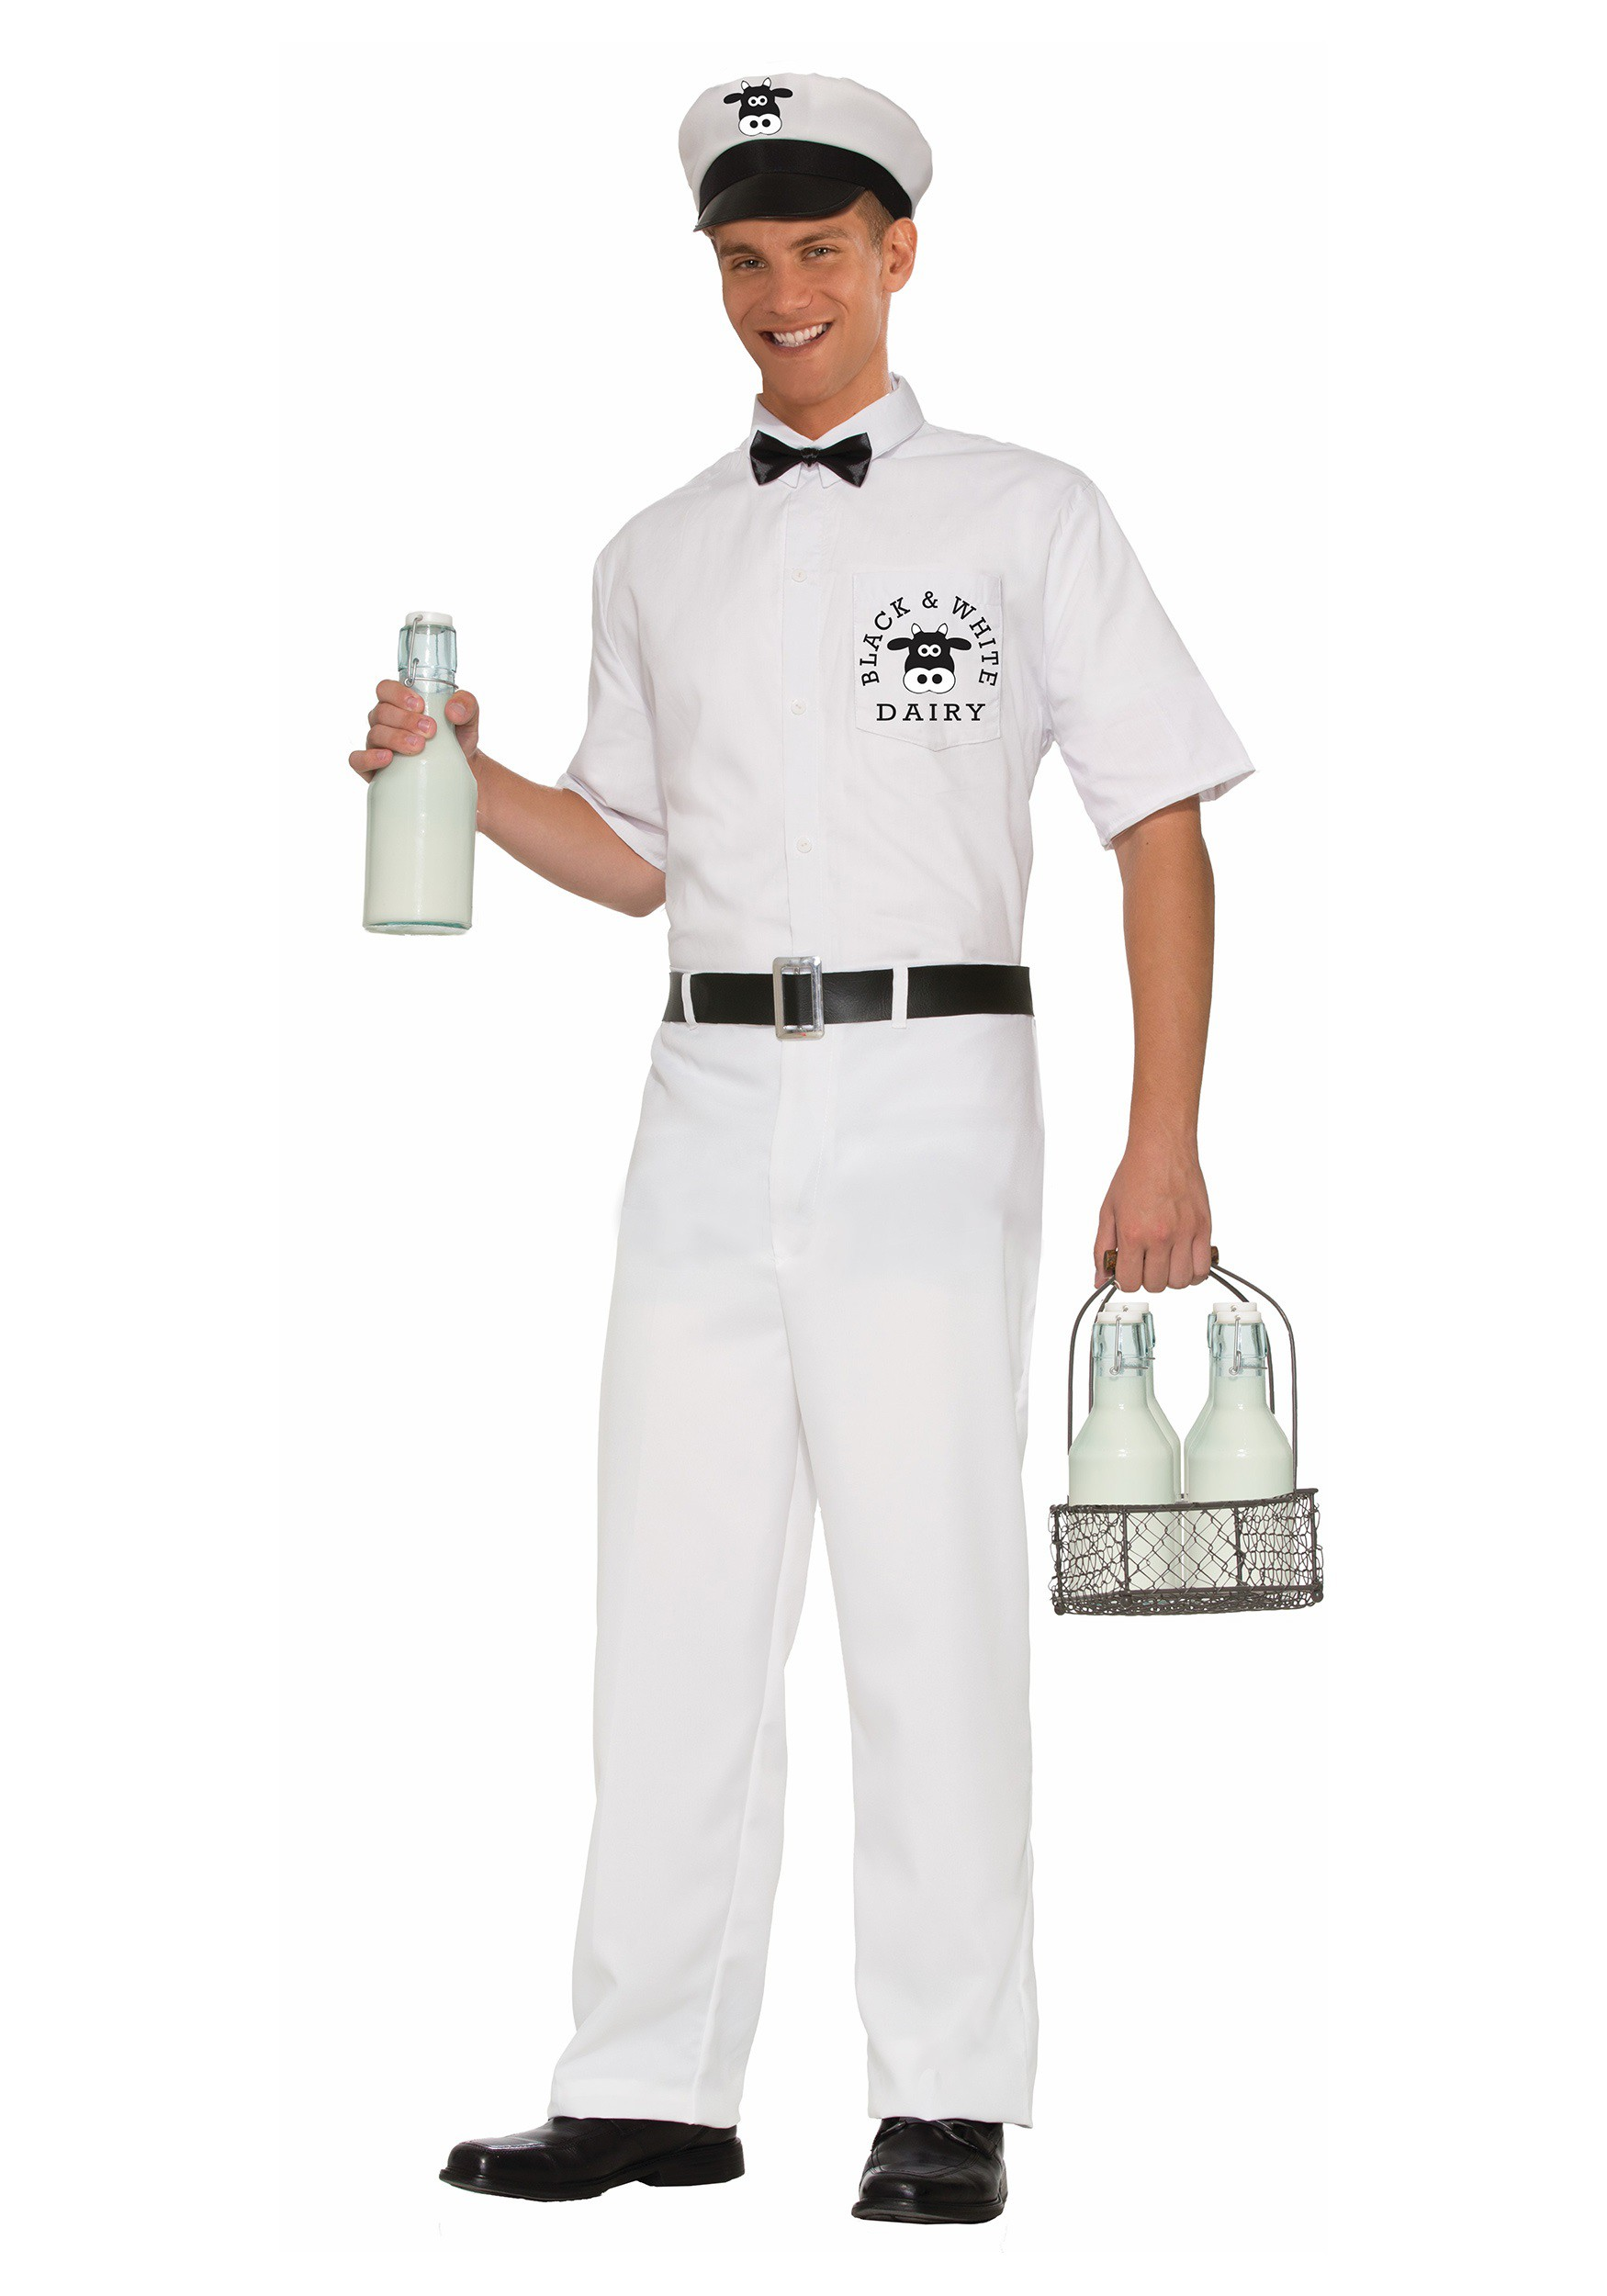 Men39;s Vintage Milkman Costume